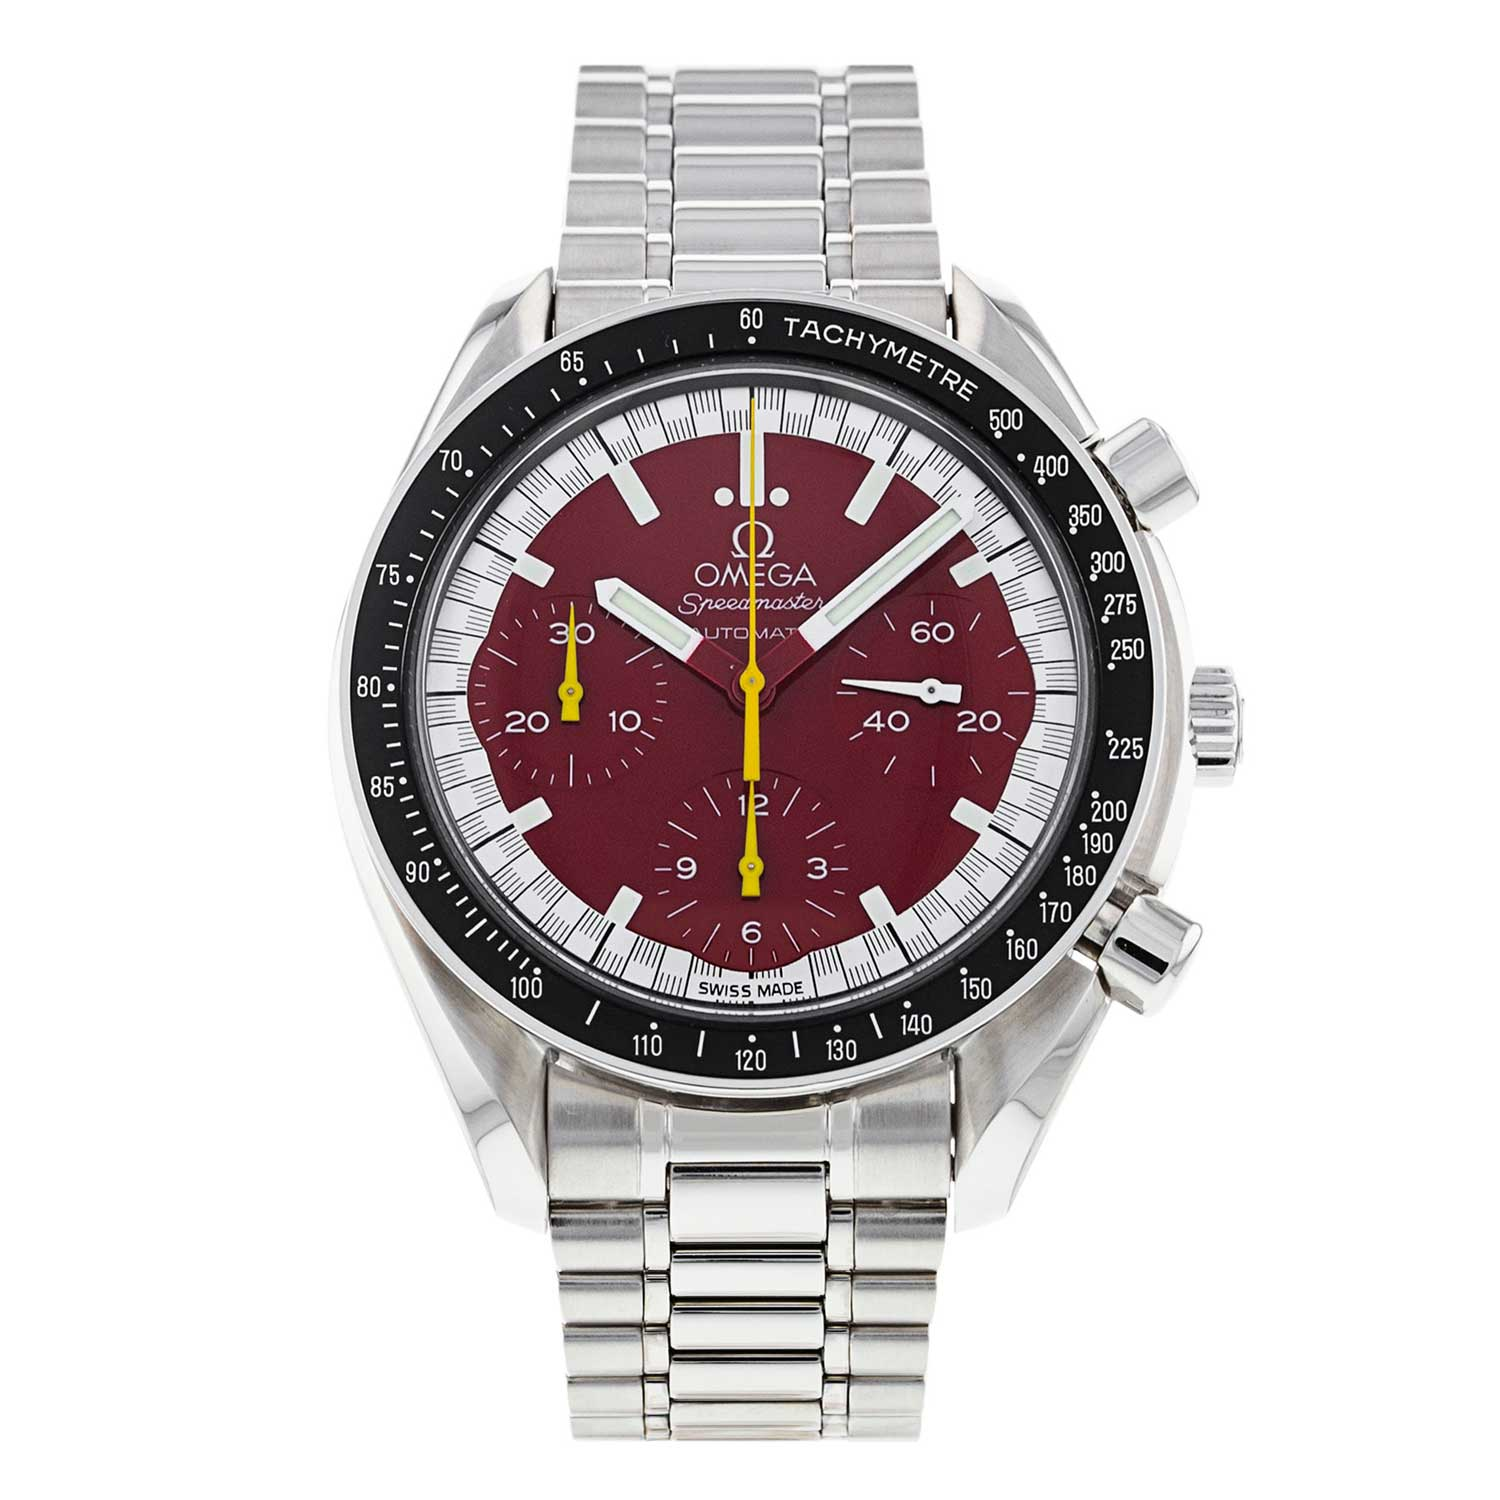 1996 Racing Speedmaster Reduced Launched by Michael Schumacher on a steel bracelet